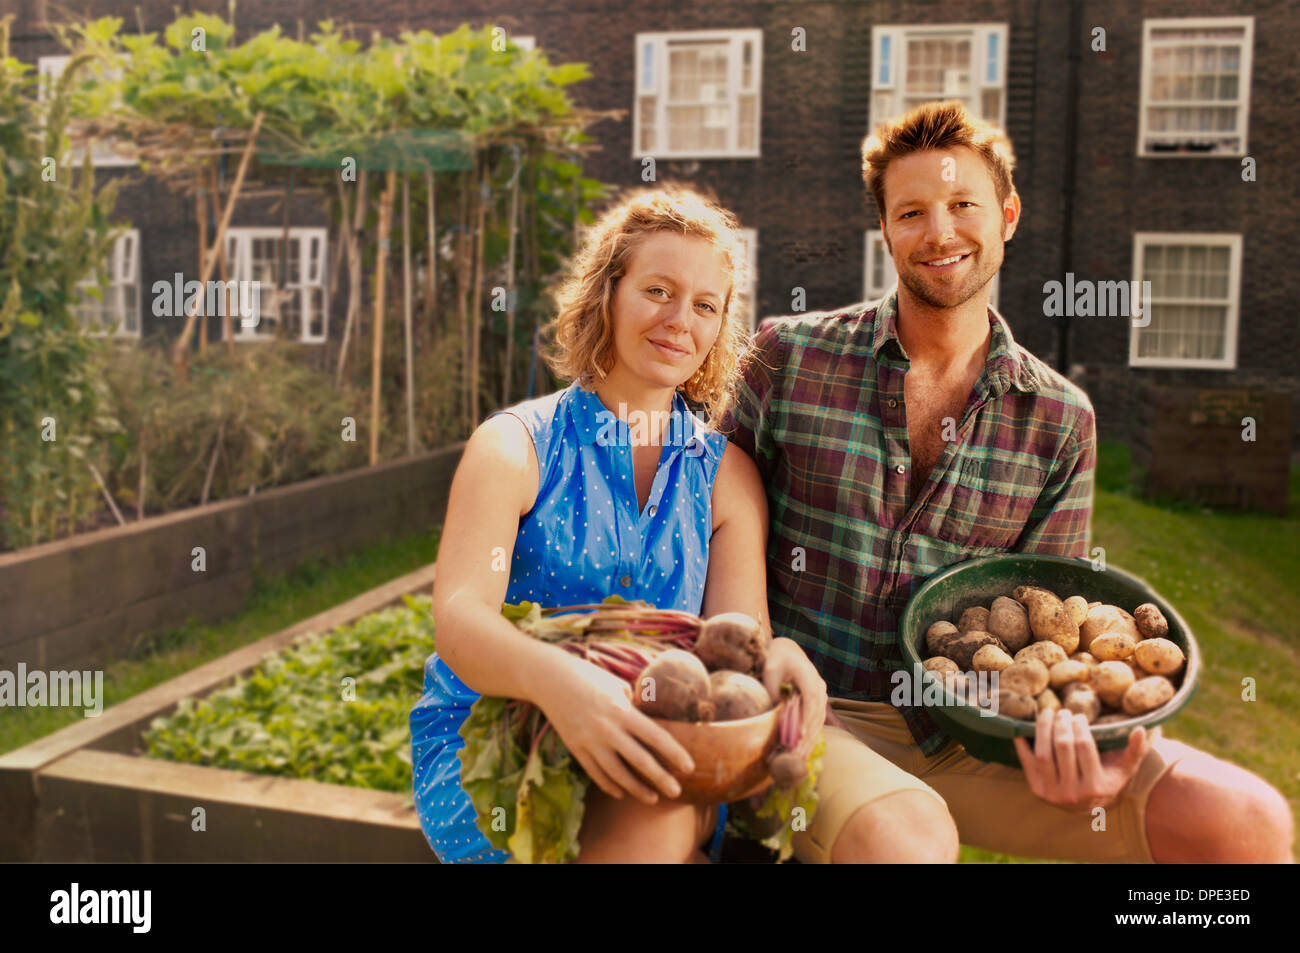 Couple with harvested potatoes and beets on council estate allotment - Stock Image